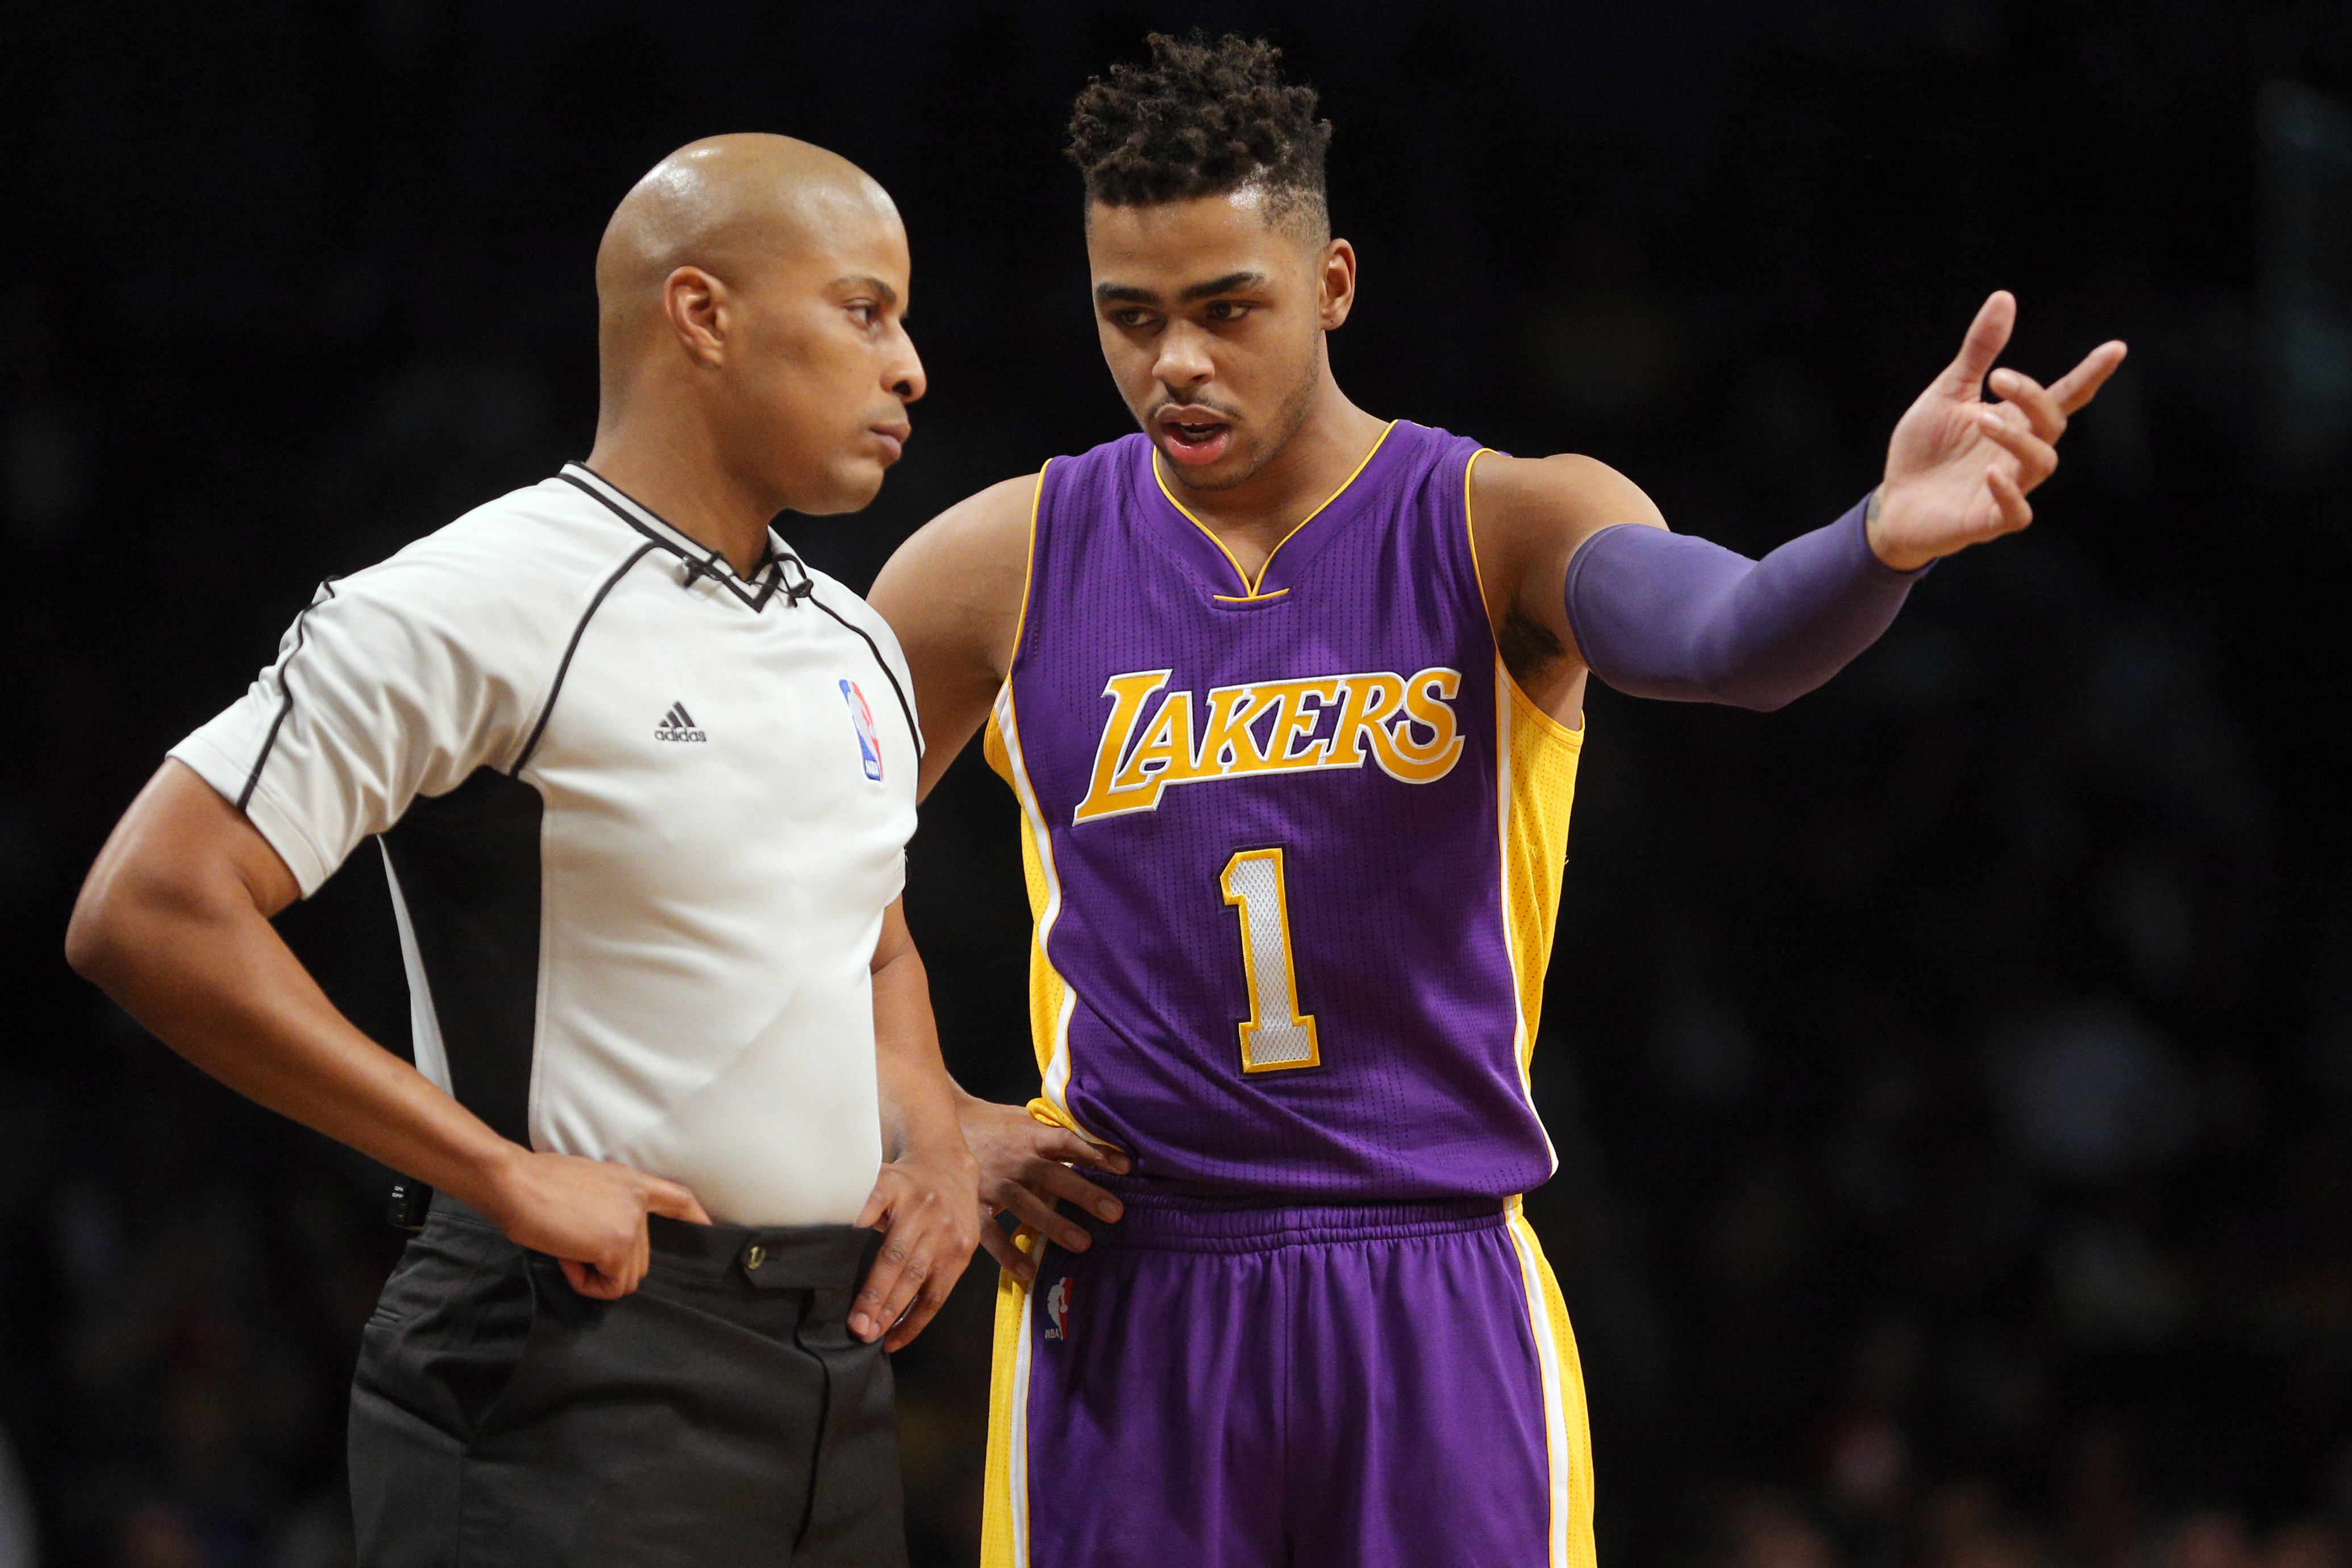 Dec 14, 2016; Brooklyn, NY, USA; Los Angeles Lakers point guard D'Angelo Russell (1) argues a call with referee CJ Washington (53) during the fourth quarter against the Brooklyn Nets at Barclays Center. Mandatory Credit: Brad Penner-USA TODAY Sports